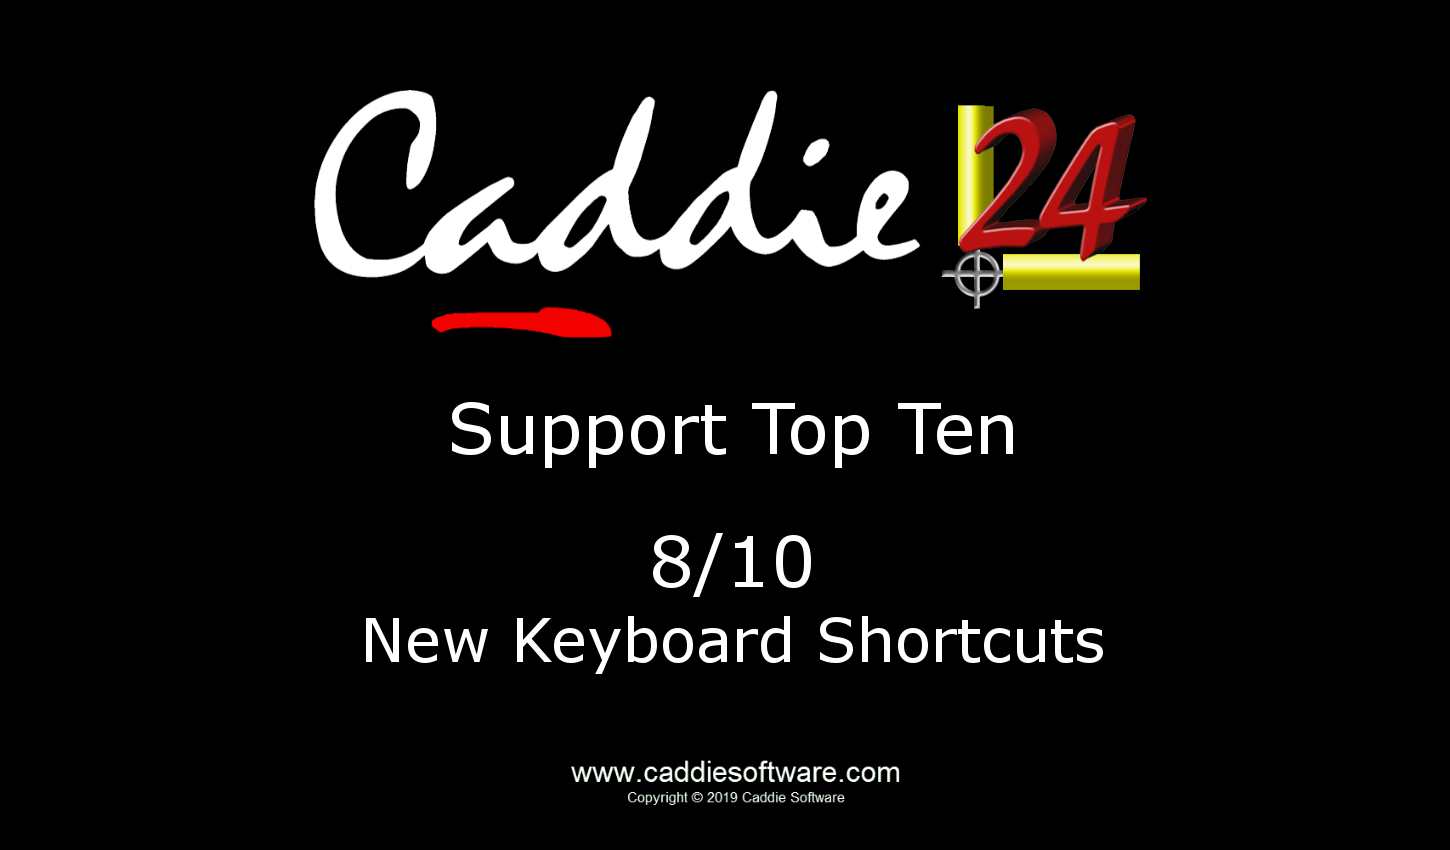 # 8/10 New Keyboard Shortcuts